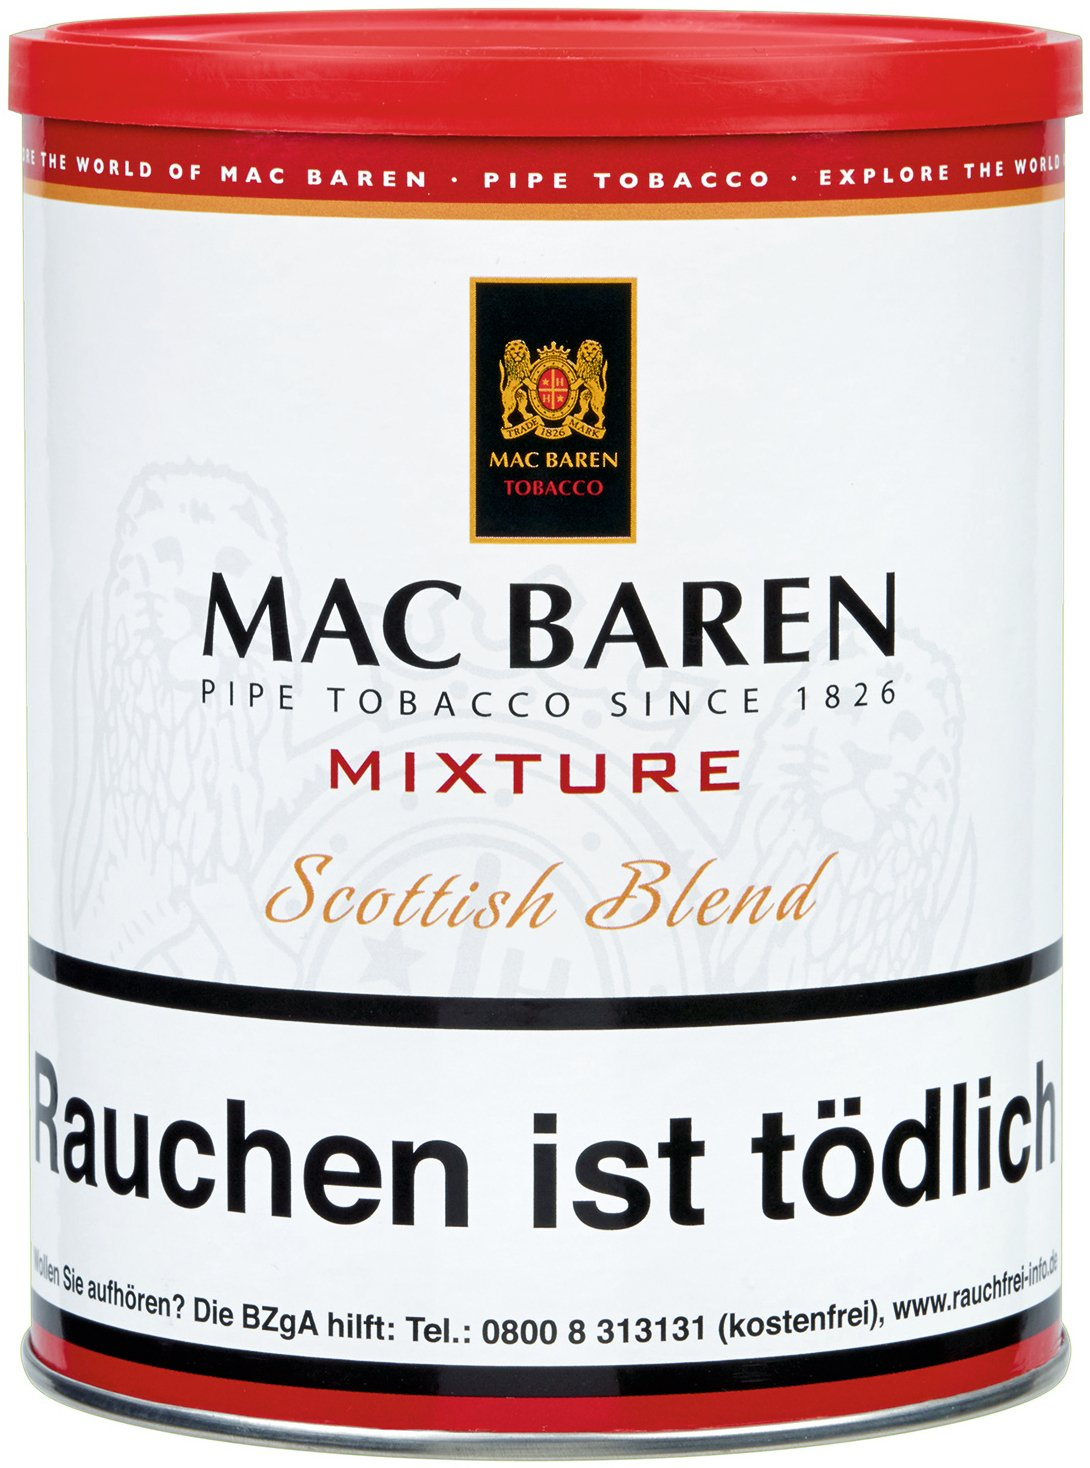 Mac Baren Mixture Scottish Blend 250g Dose